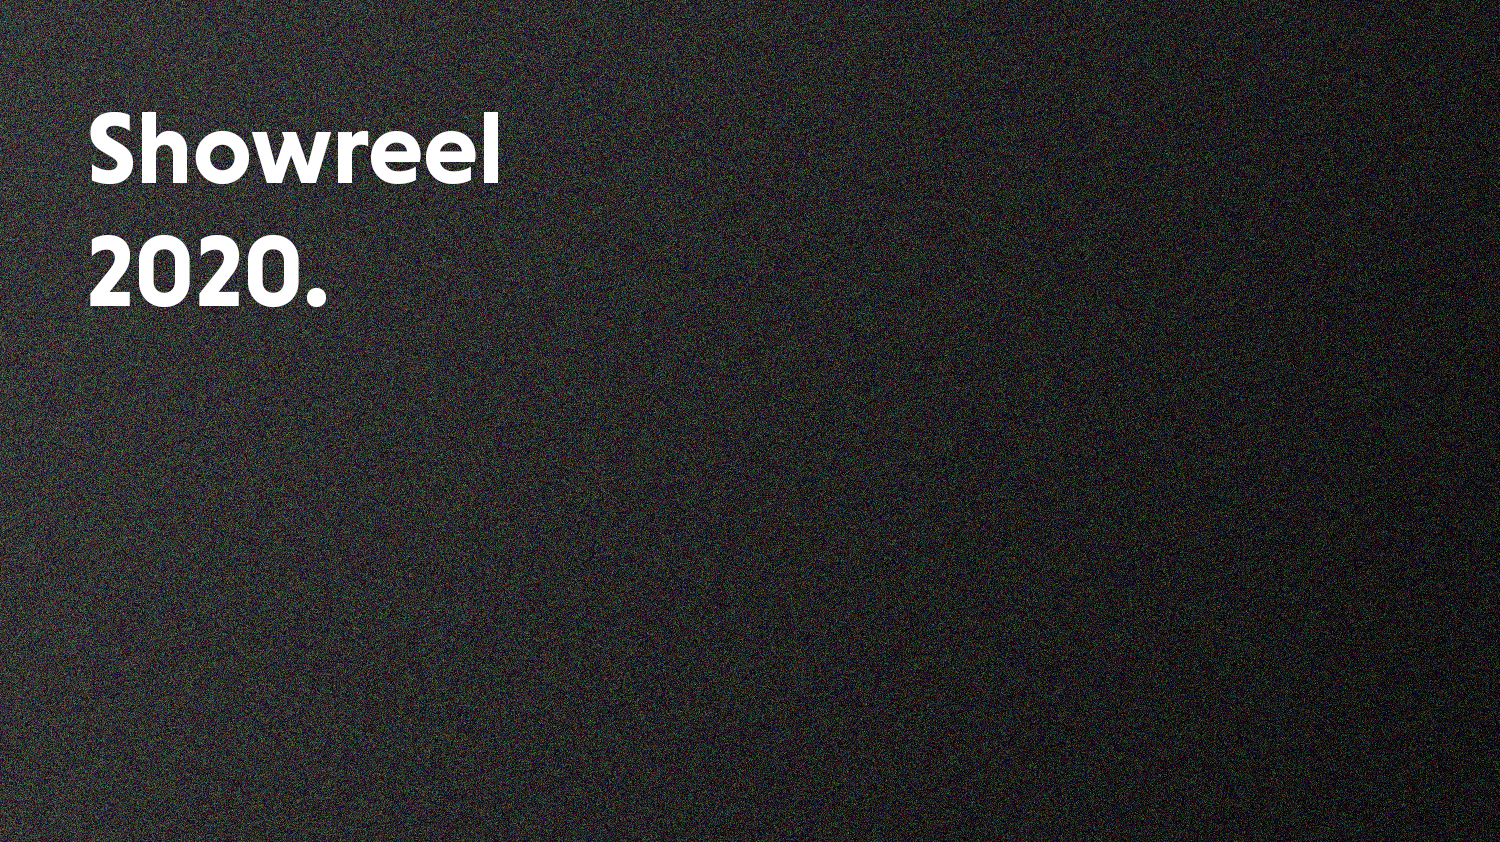 Showreel 2020 for Glasgow based Web Design and Digital Marketing Creative Agency, Red Media.